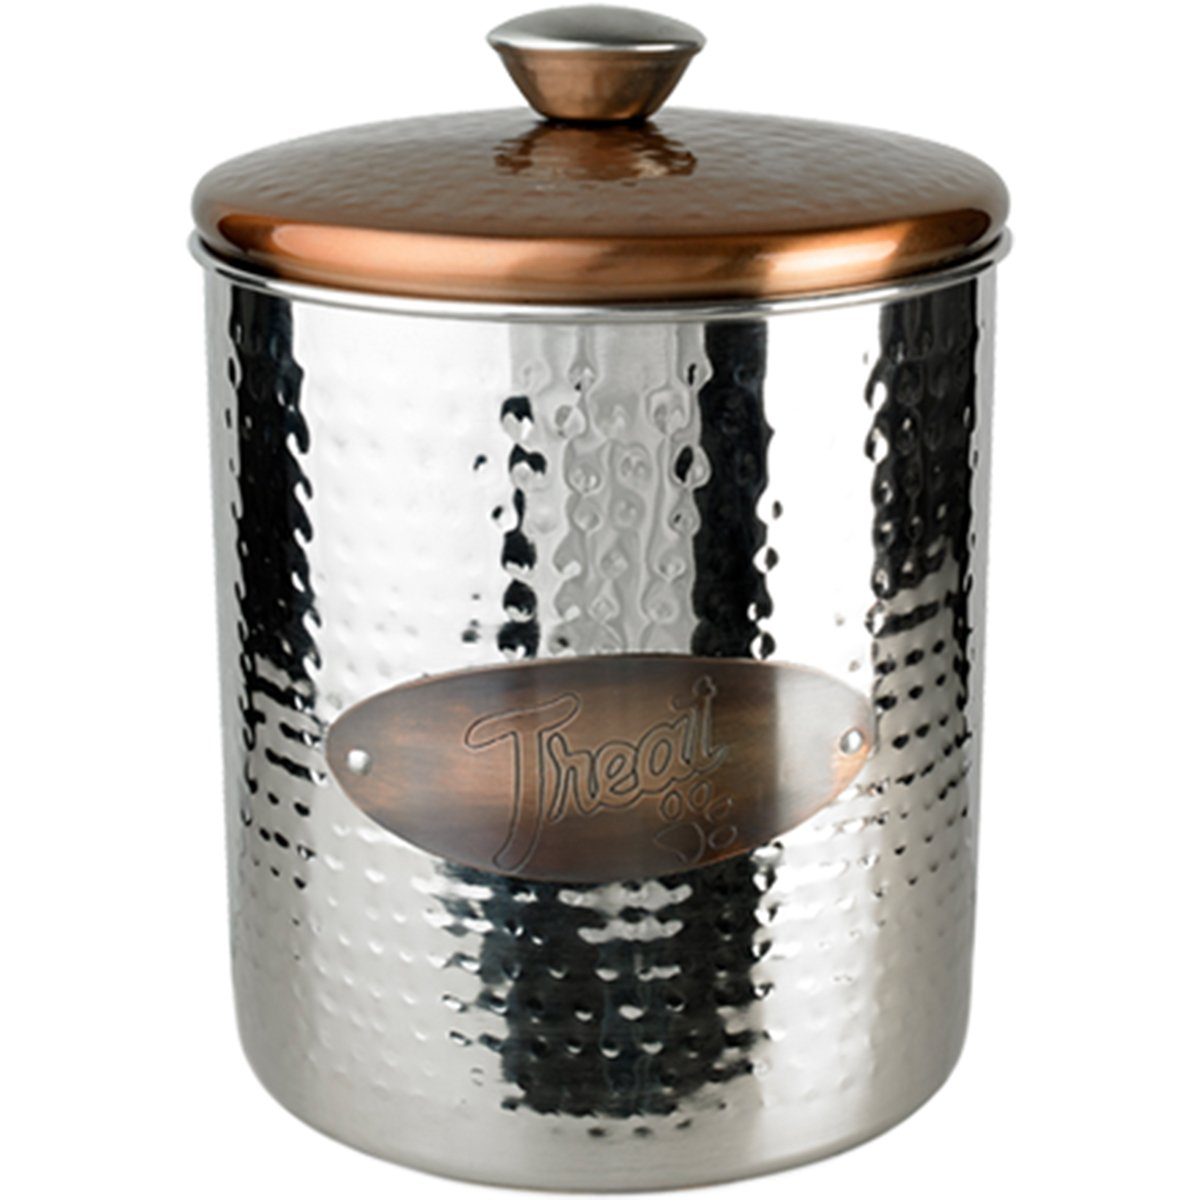 Buddy's Line Hammered Stainless Steel Copper Top Treat Jar 16 oz